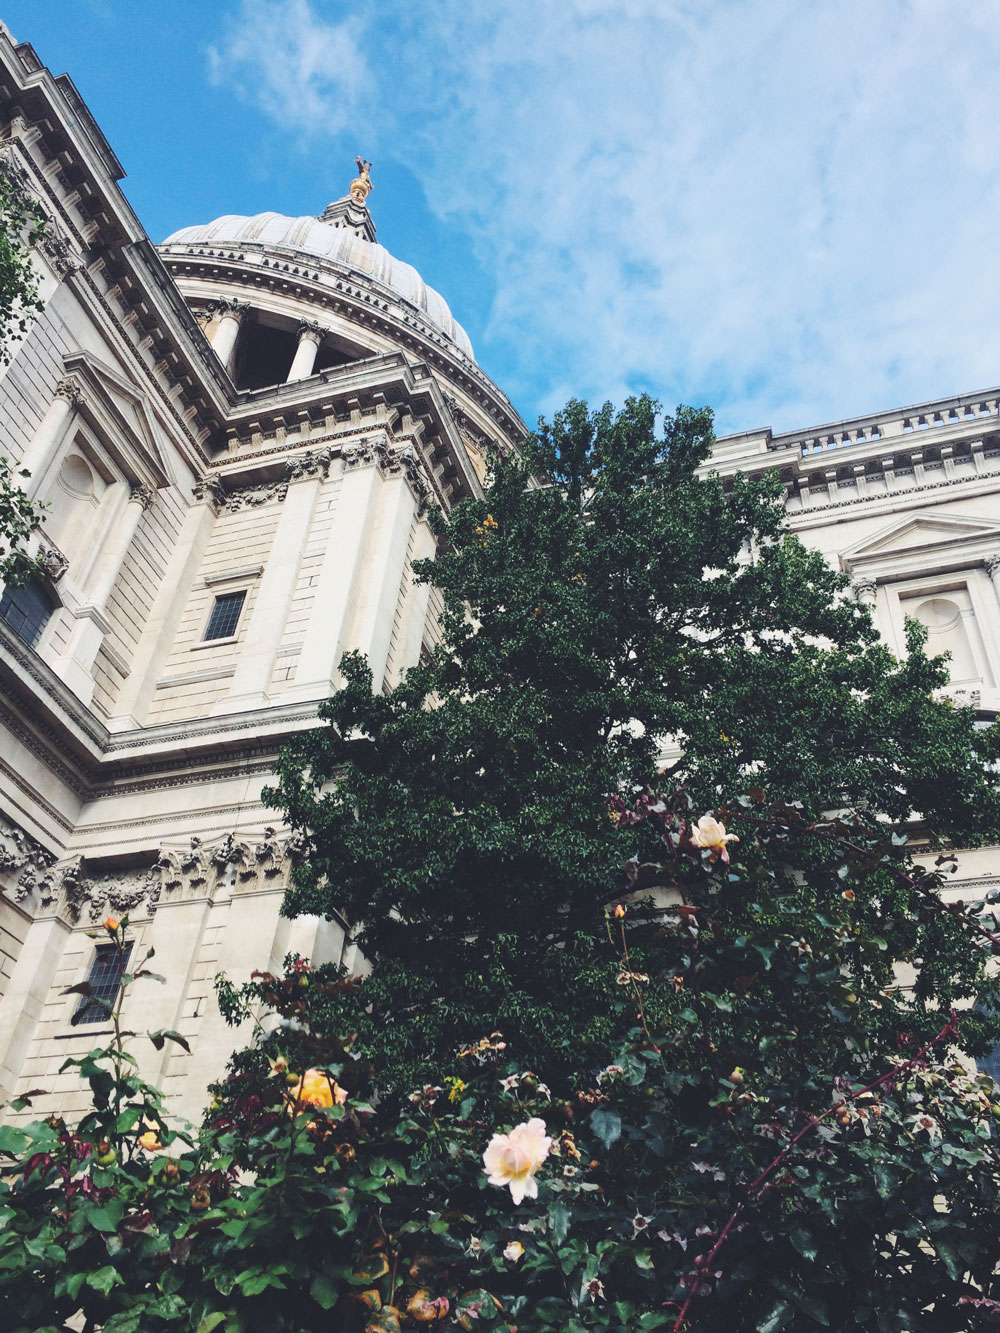 Go-Jauntly-City-Walk-stpauls-cathedral-London-Vestd.jpg